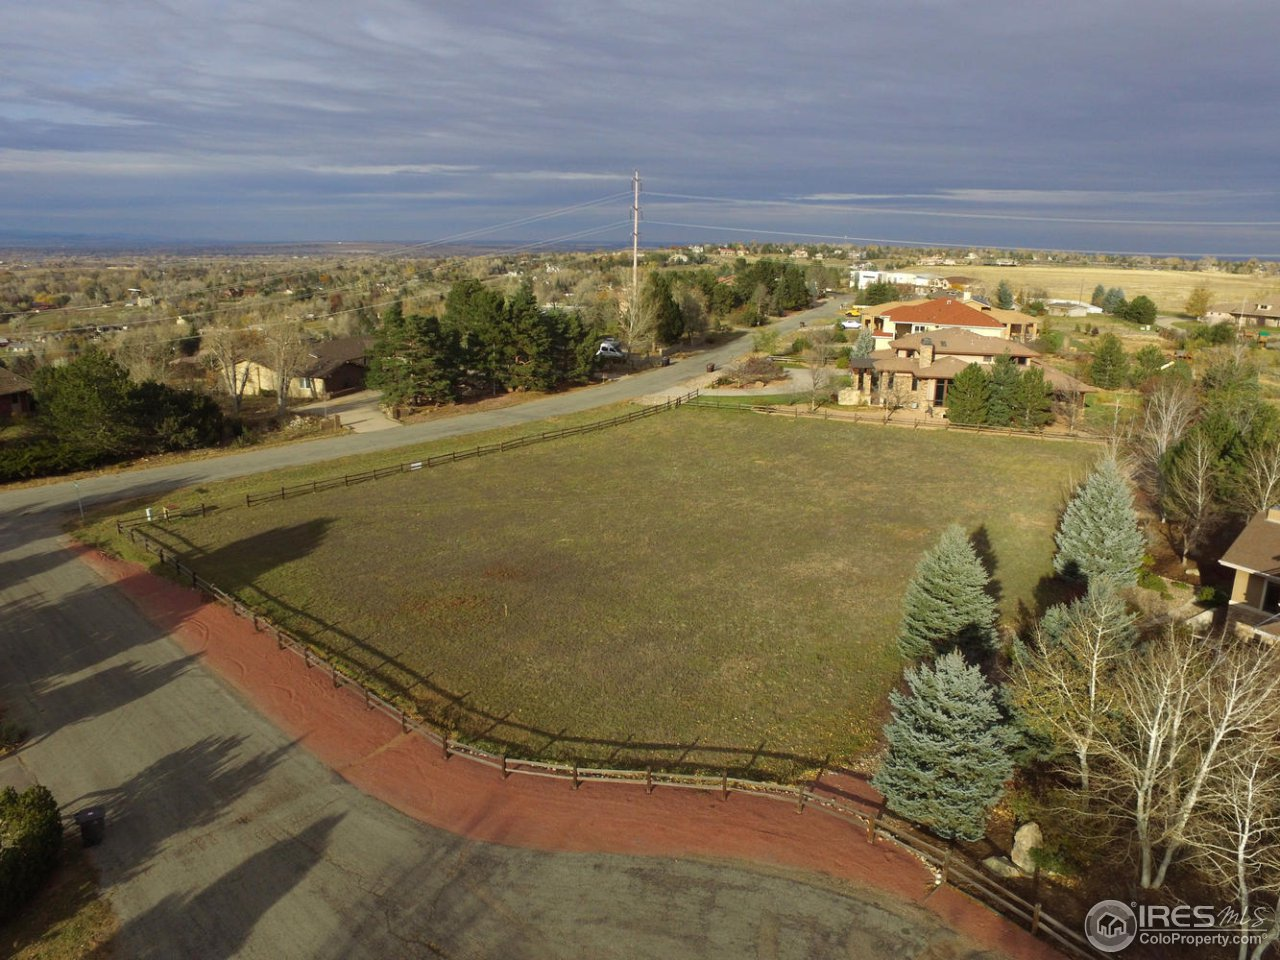 Build your dream home on this flat lot in highly desirable Panorama Park. Rare opportunity to purchase vacant land in Boulder County. Convenient location just 5 minutes to Boulder and  Louisville, with top rated BVSD schools.  Beautiful setting, close to open space and trails,and surrounded by multi-million dollar homes. Water tap fee paid. Home will need septic.